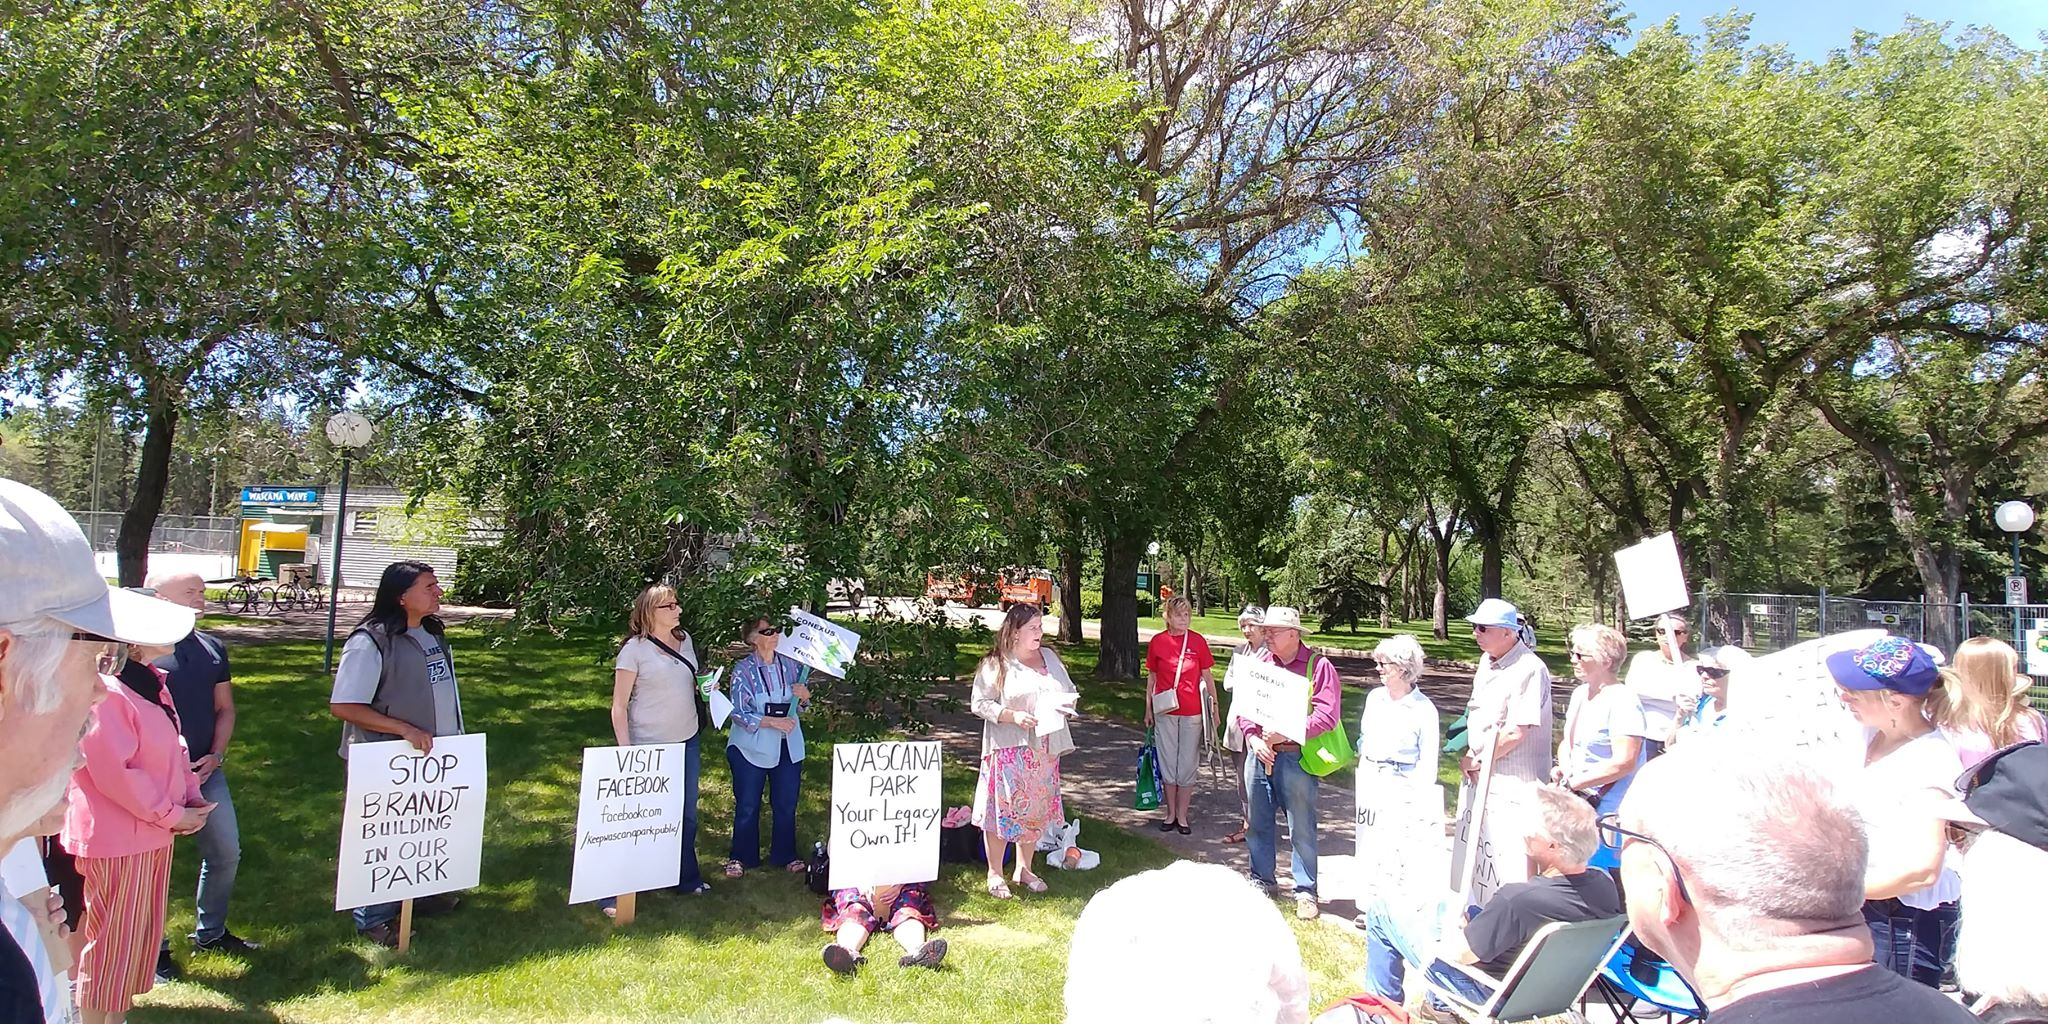 'No business in the park' continues protest of building in Wascana Park